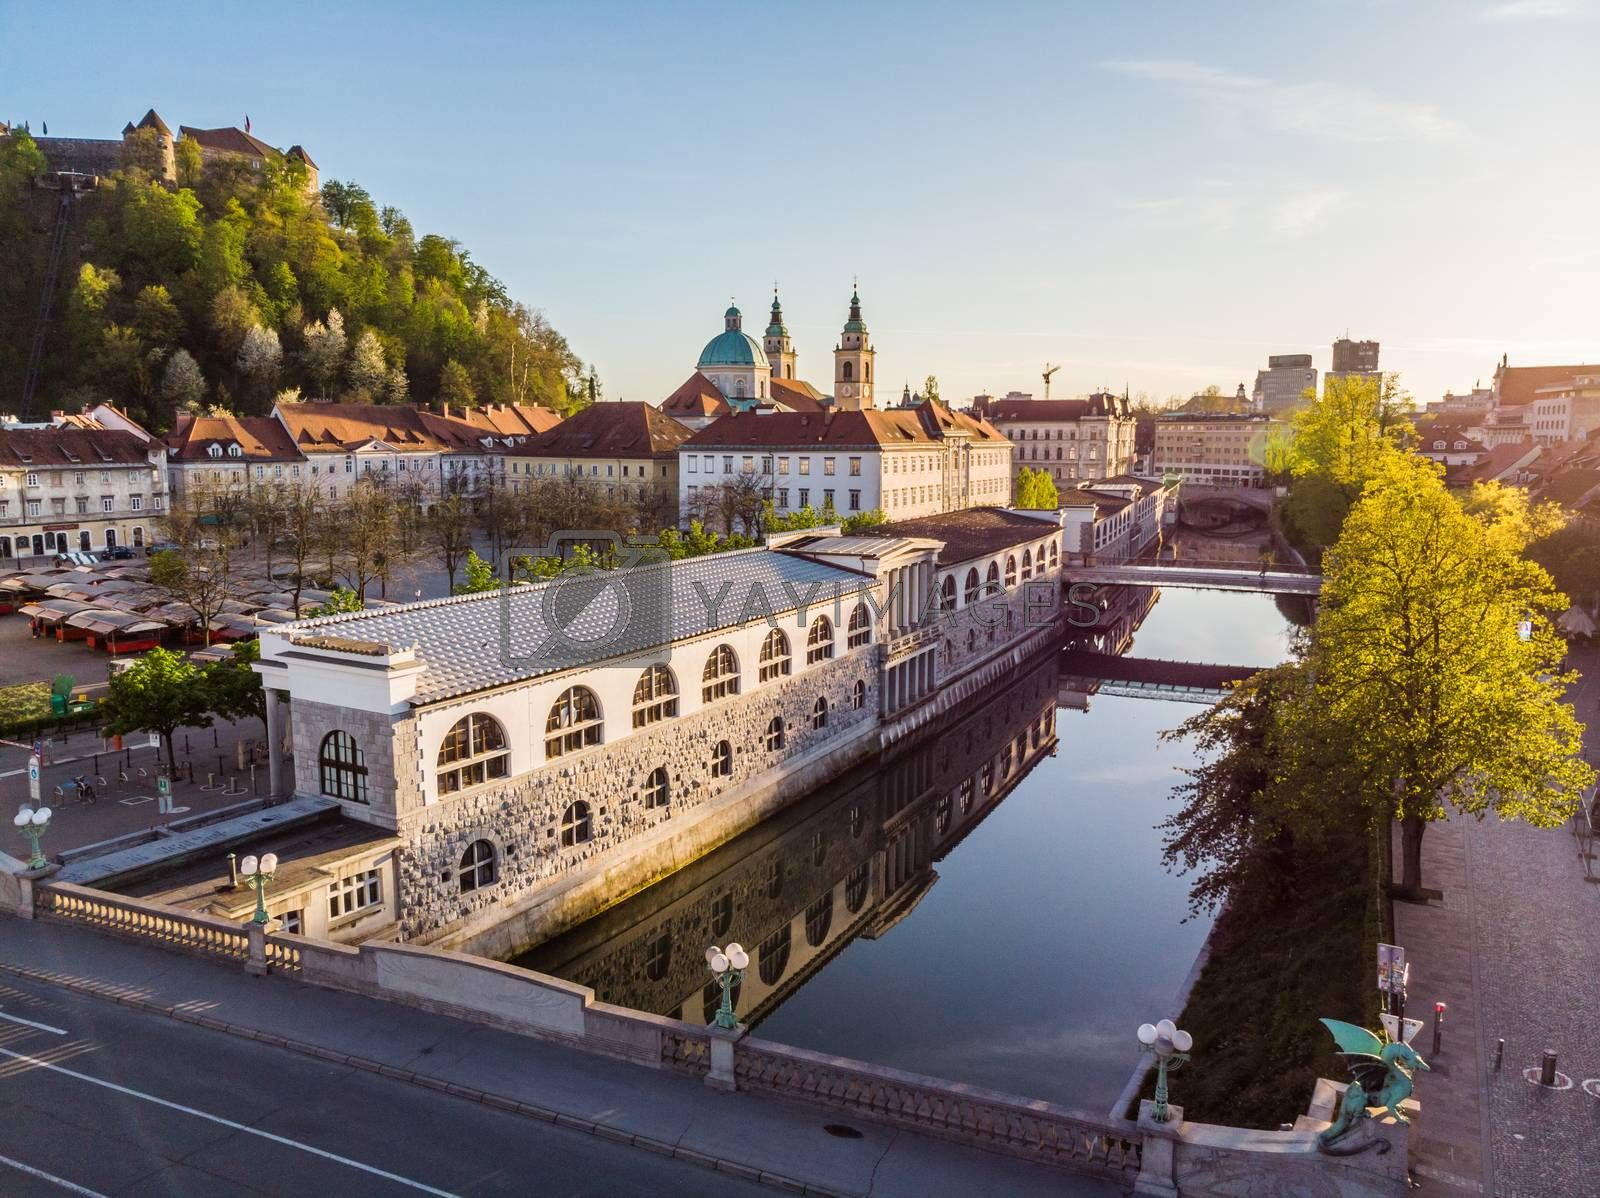 Aerial drone panoramic view of Ljubljana medieval city center, capital of Slovenia in warm afternoon sun. Empty streets during corona virus pandemic social distancing measures.